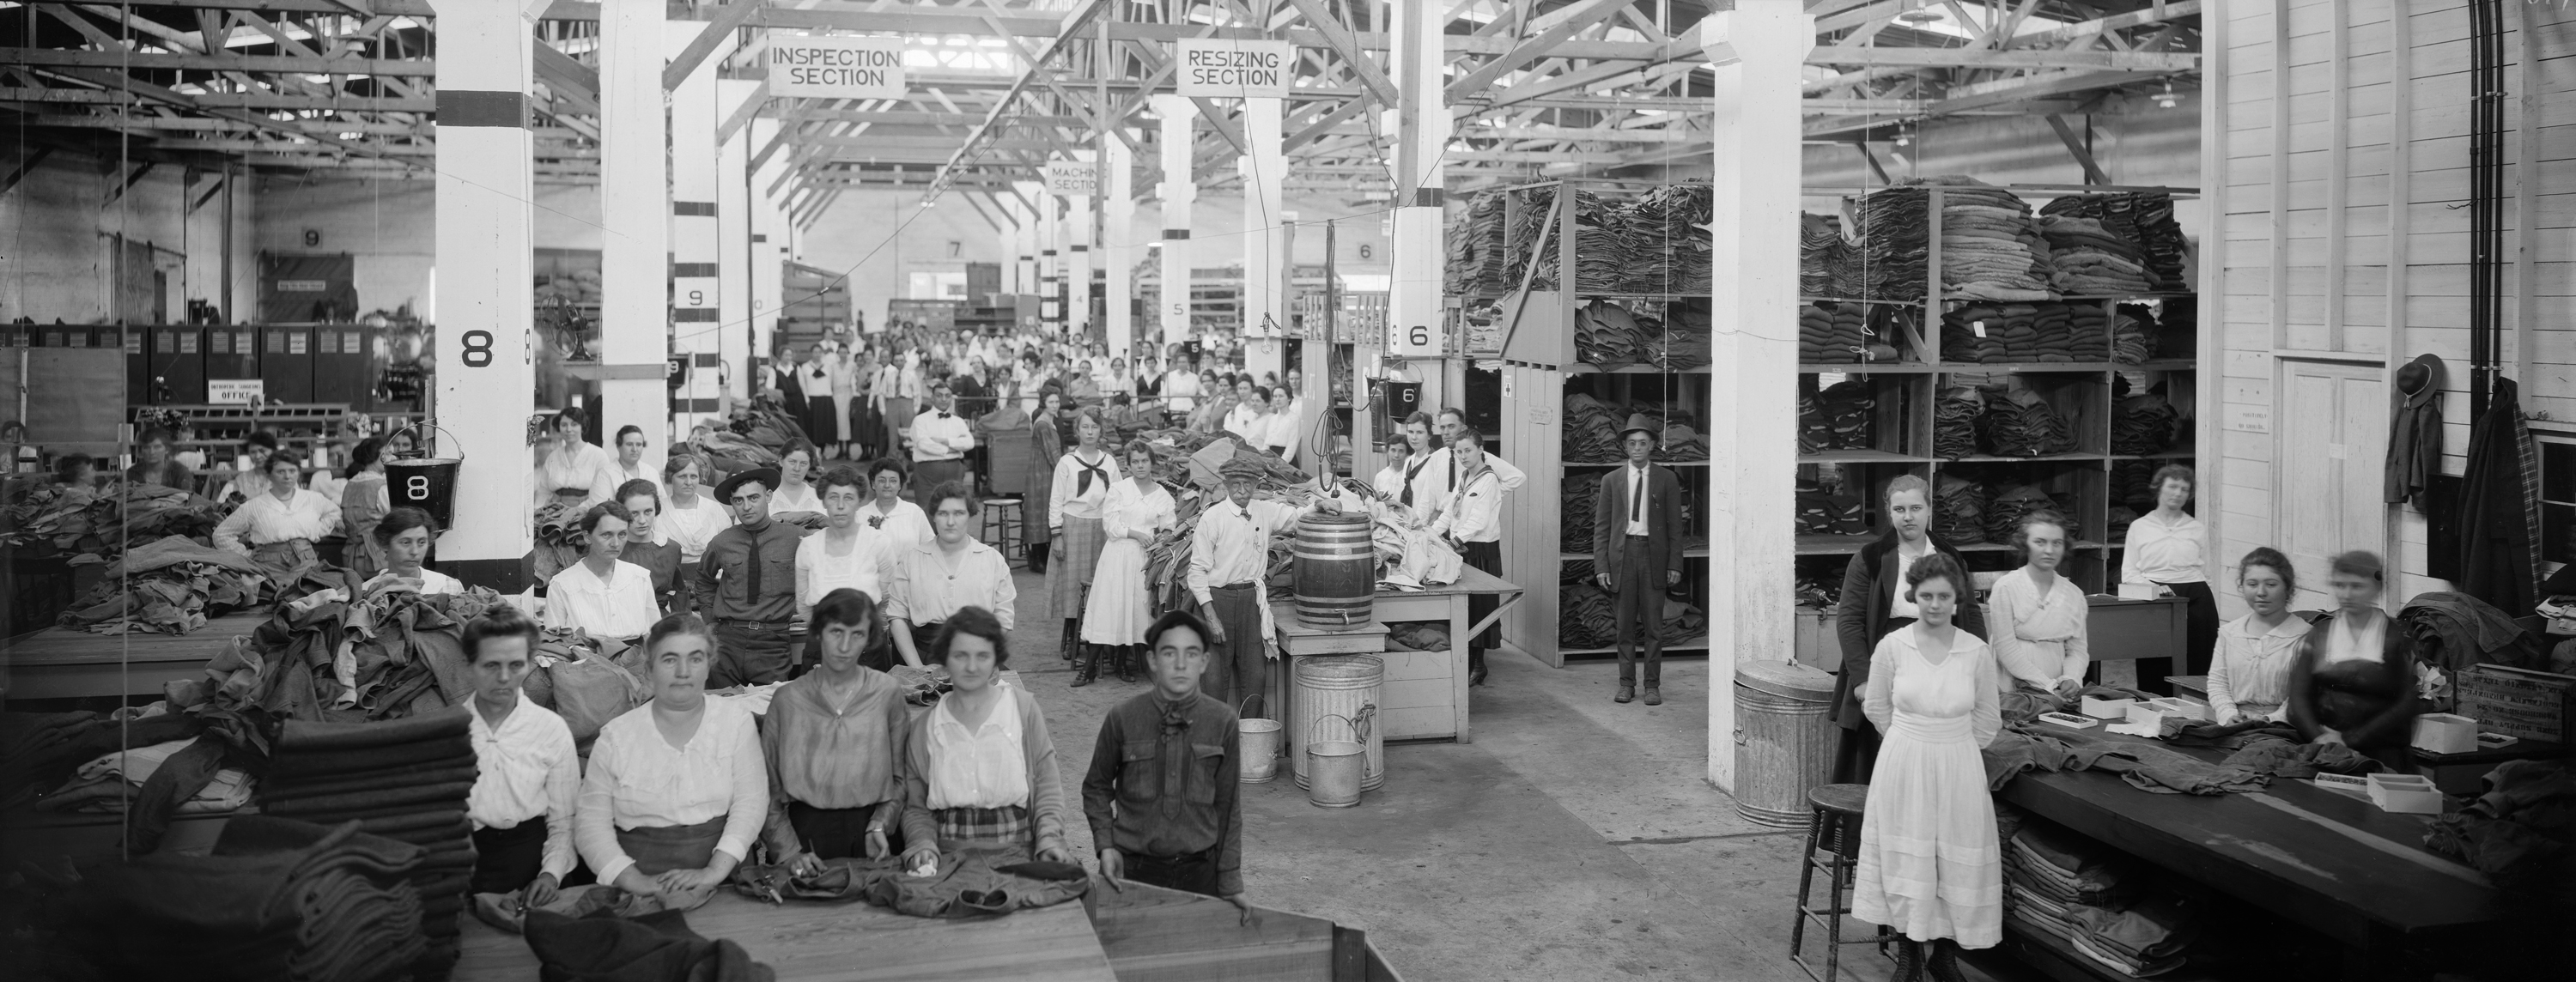 Attributed to C. A. Stead (American, 1870-1932), QMC Personnel Working on Army Clothing at a Supply Depot, ca. 1919. Digital positive from nitrate negative, 20 x 50.4 cm. E. O. Goldbeck Papers and Photography Collection, 967:0068:0887